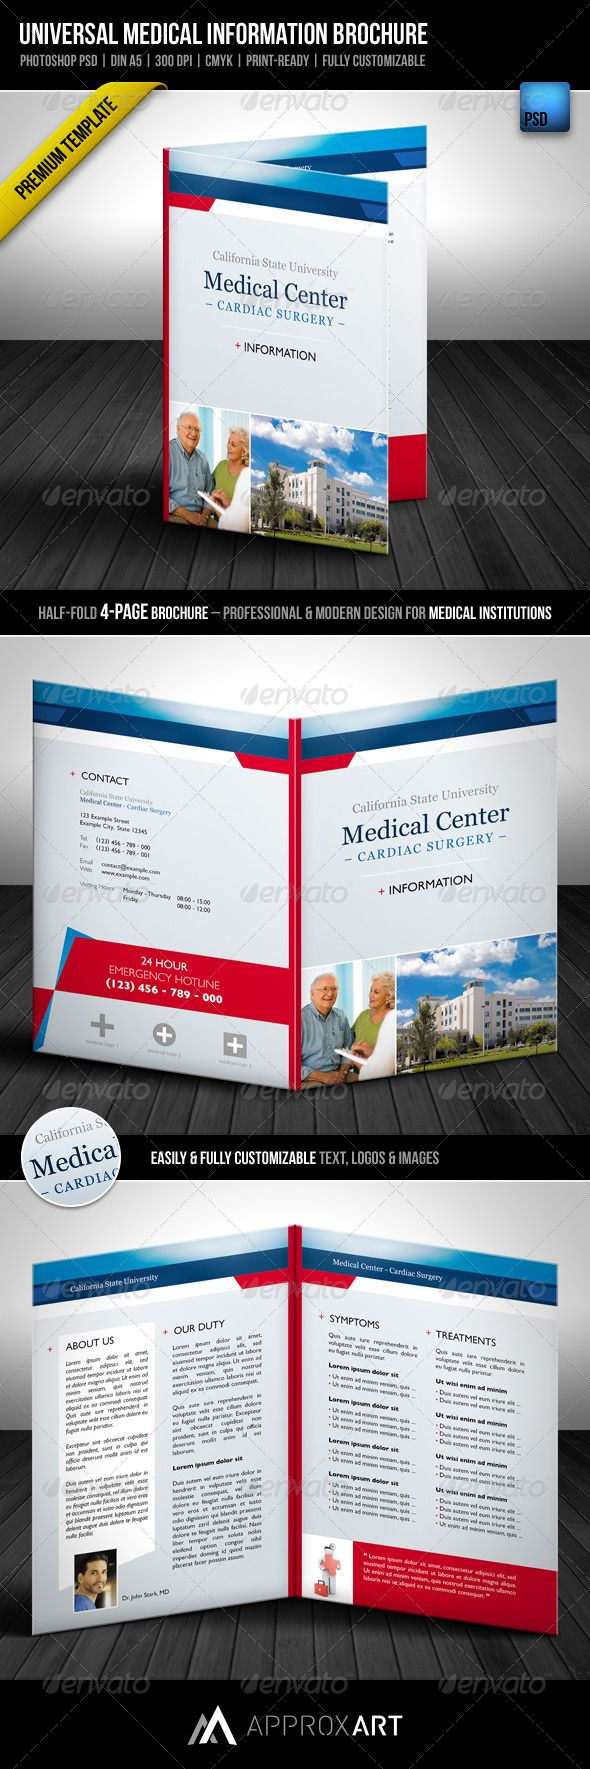 14 best images about hospital brochures on pinterest for Information brochure template